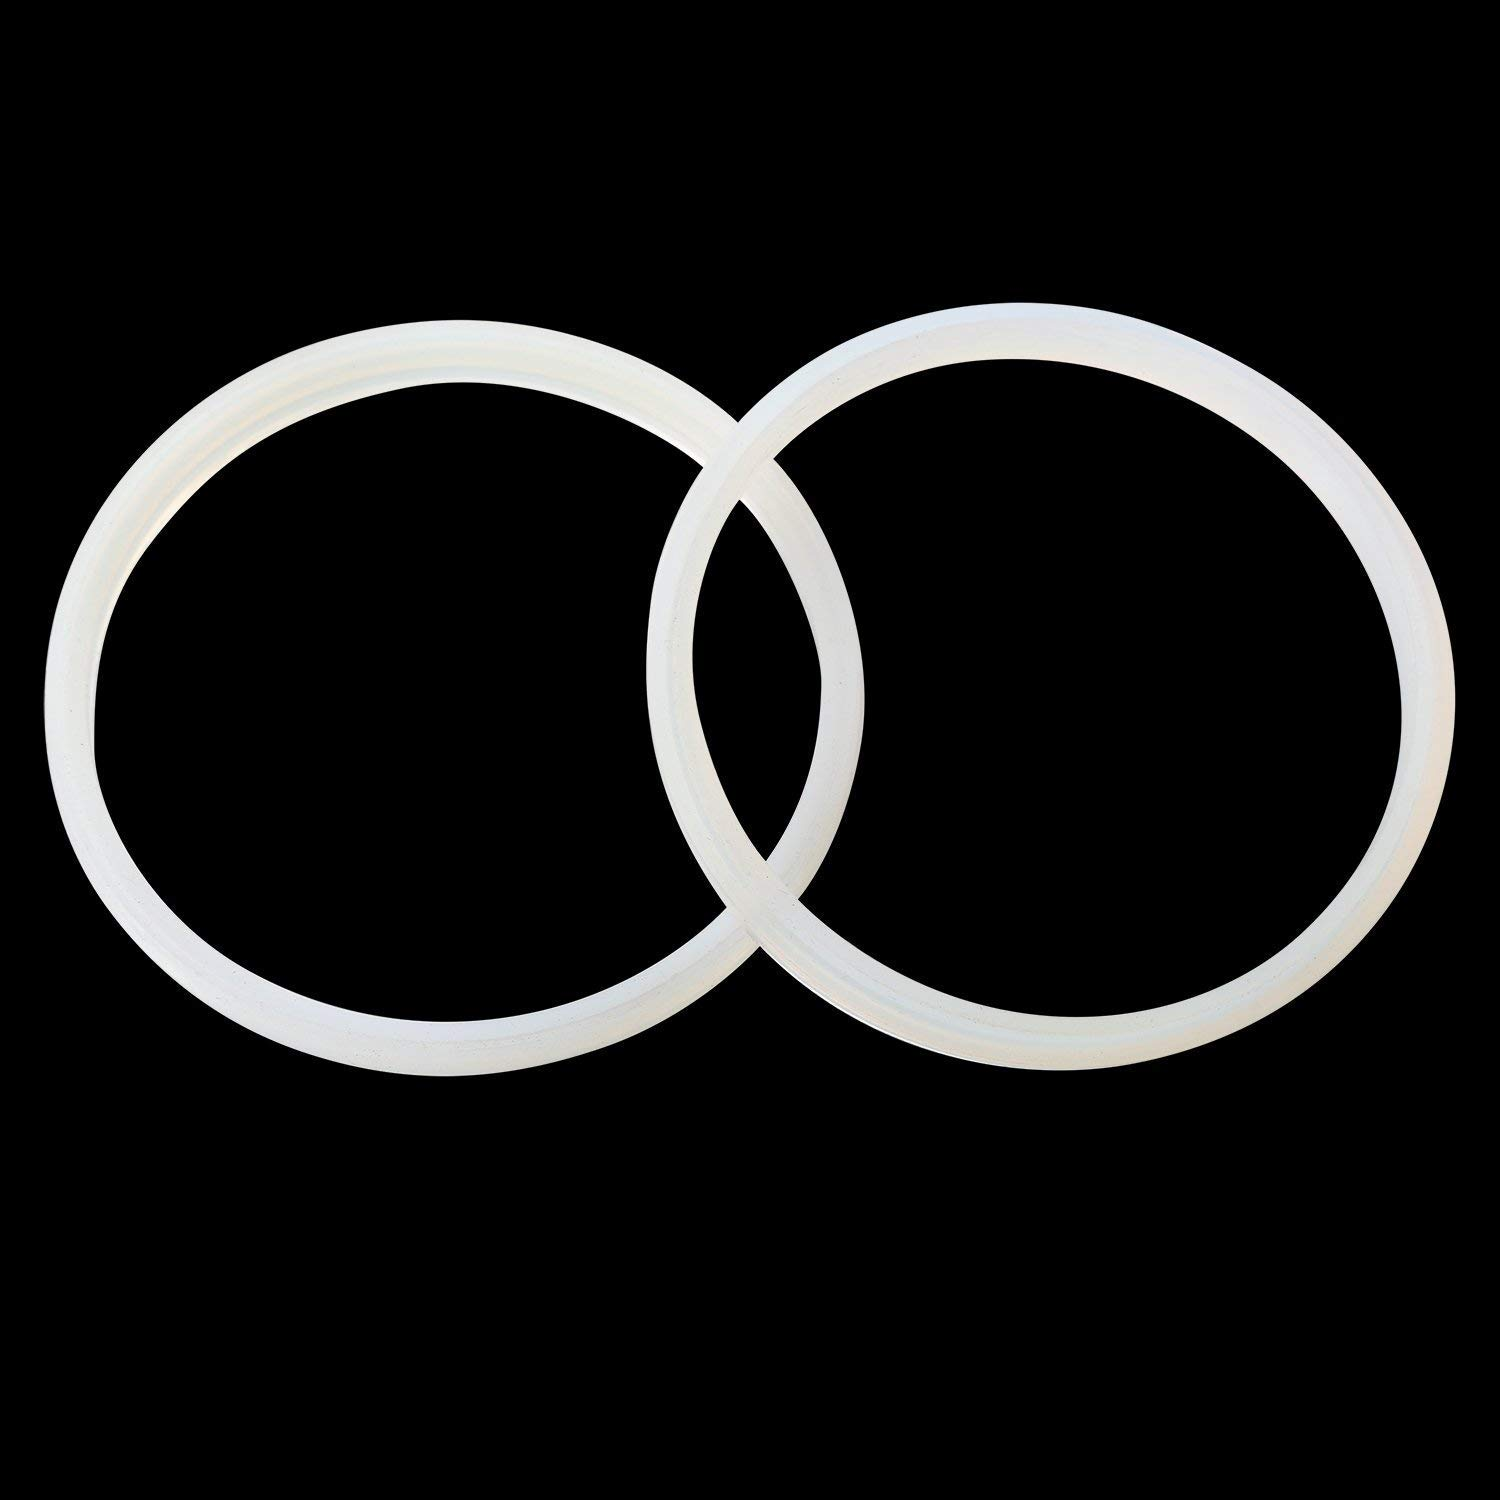 TWO PACK Replacement rubber seal gasket for SHC 7 L & VIVO STUFR-V003 & STUFR-V005 stuffer with 5